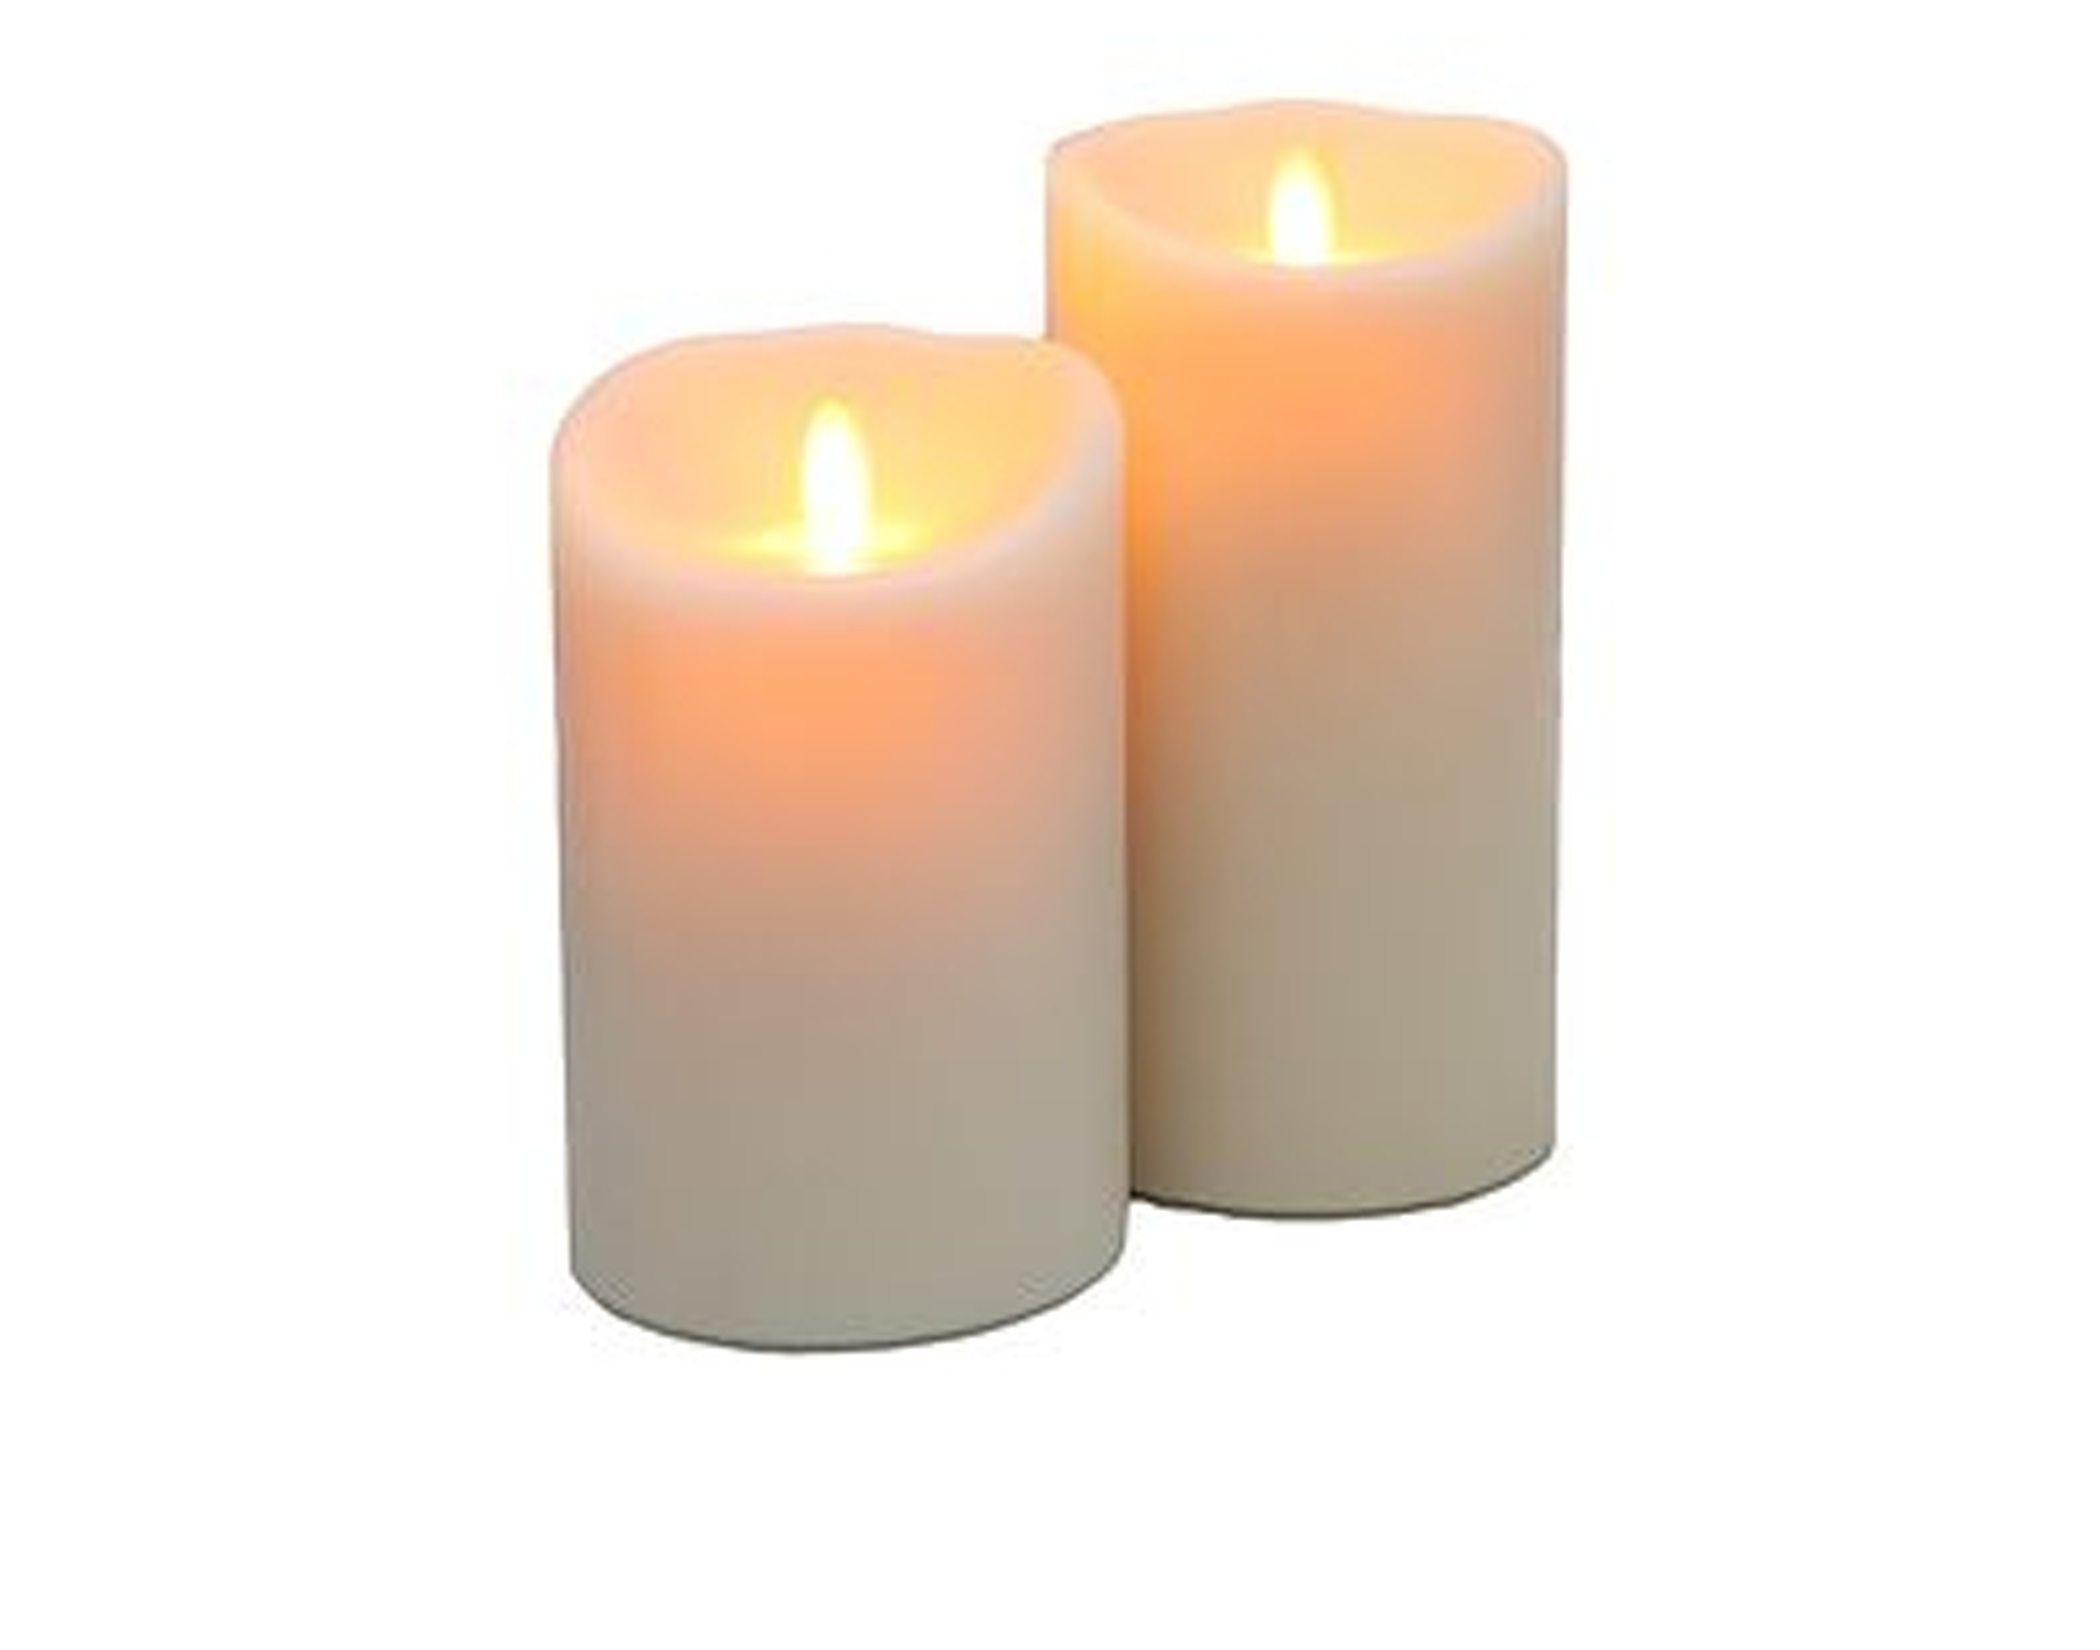 Png hd transparent images. Drawing candles candle light freeuse stock